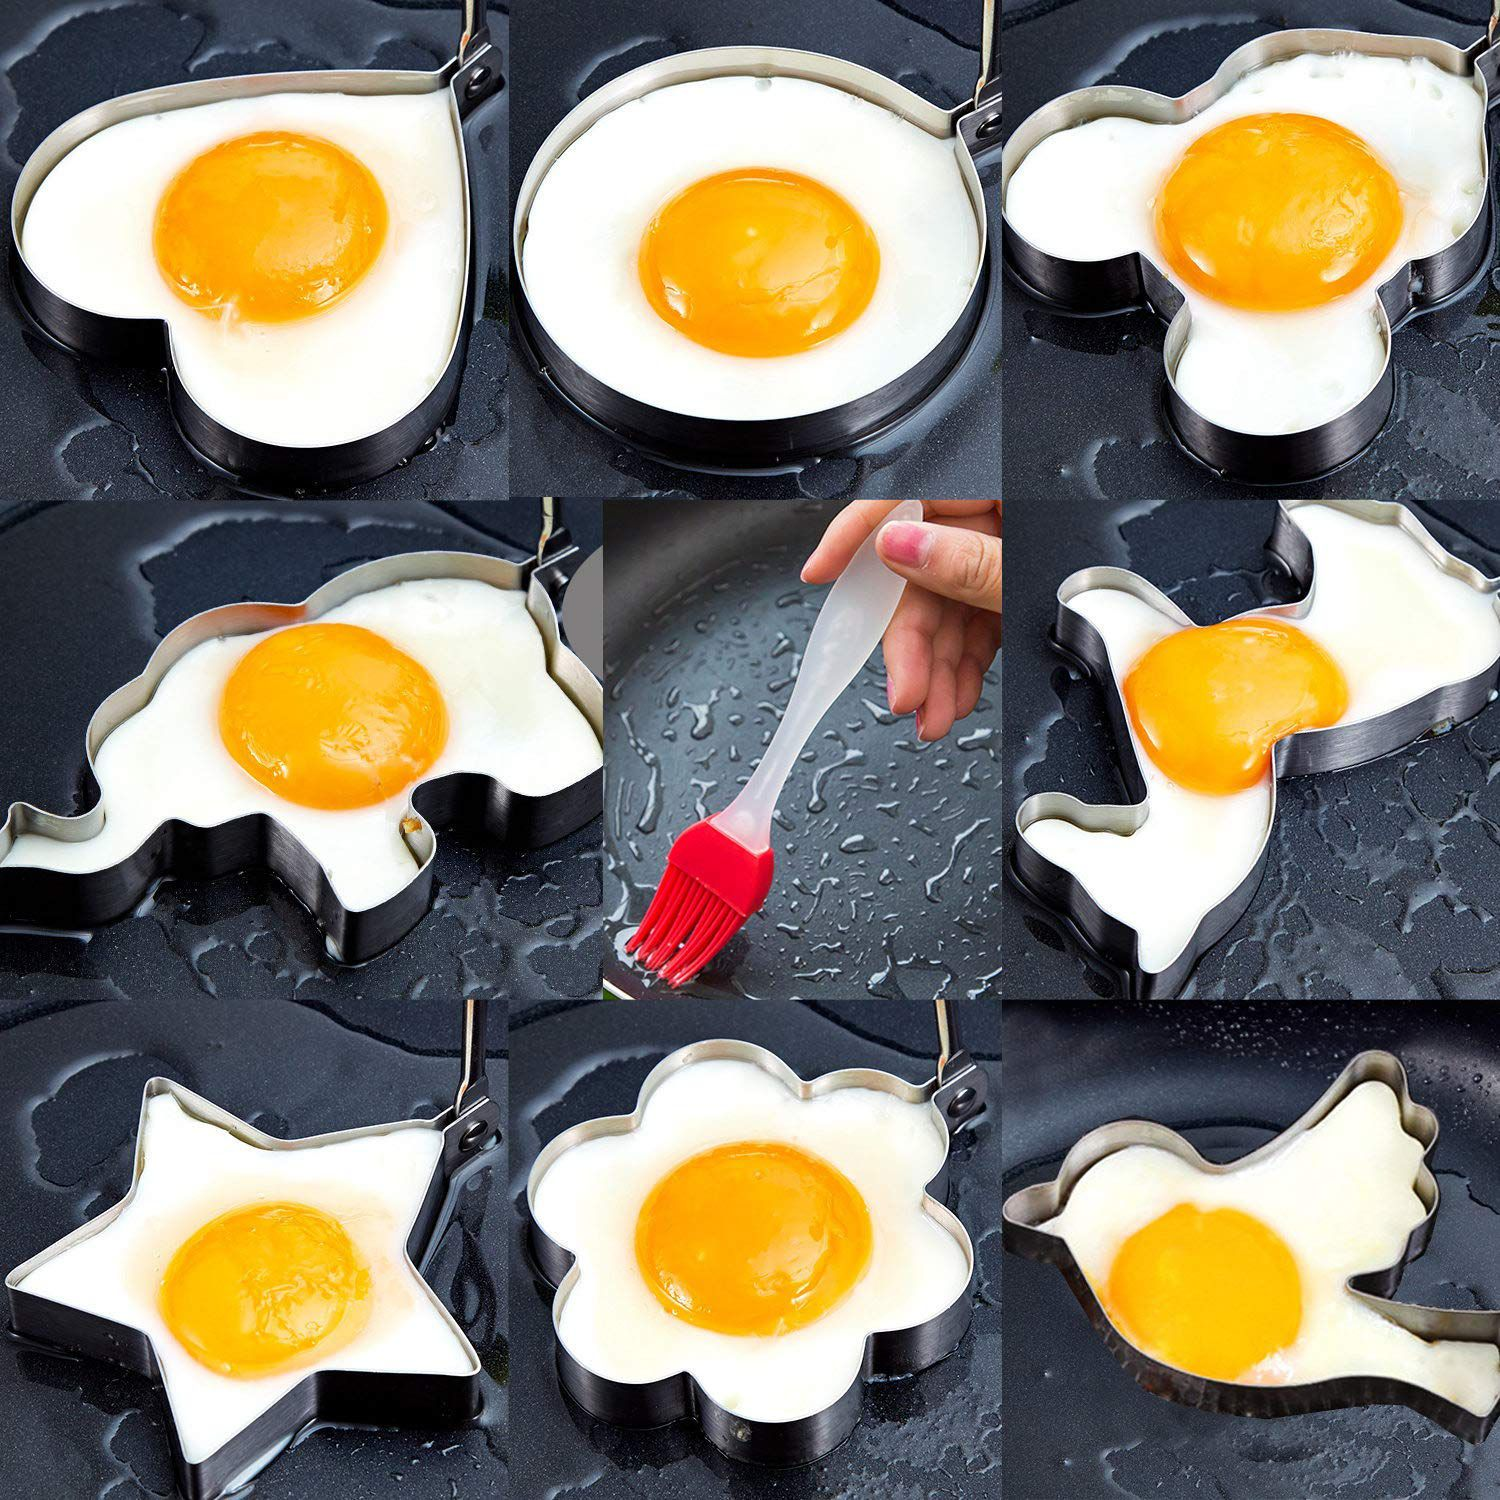 Larger Non Stick Metal Egg Frying Rings Perfect Circle Round Fried Poach Mould Mould Non-Stick Egg Rings Cooking Egg Fried Pancake Omelets Mold Rings Kitchen Tool Pancake Rings